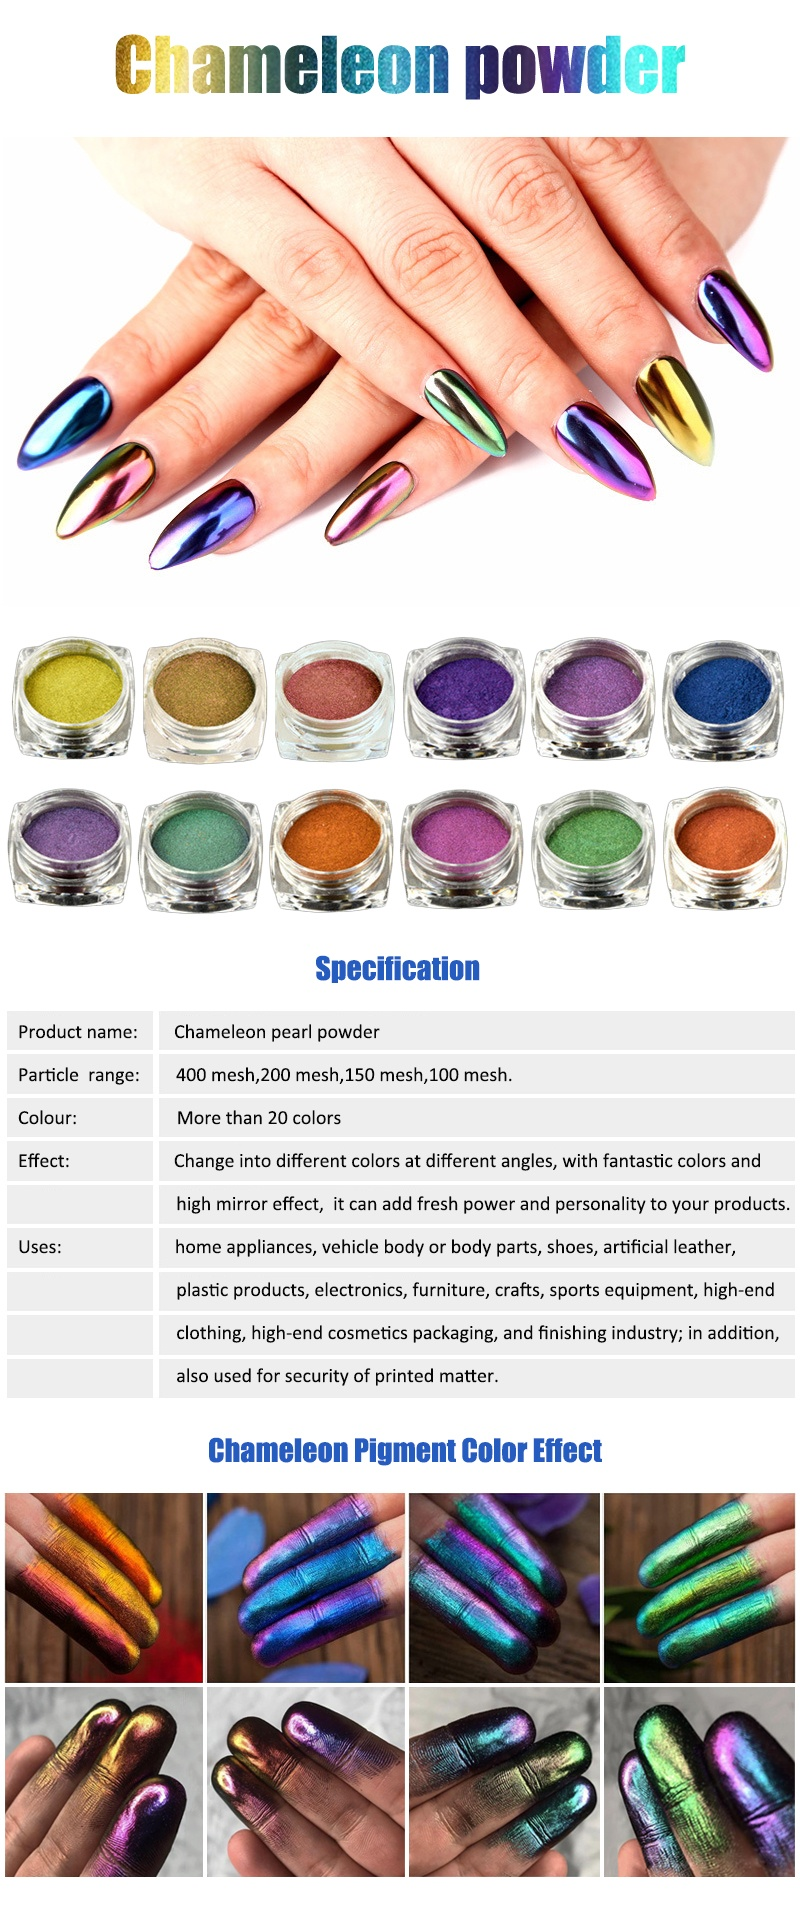 Chameleon Pigment for cosmetic and nail polish